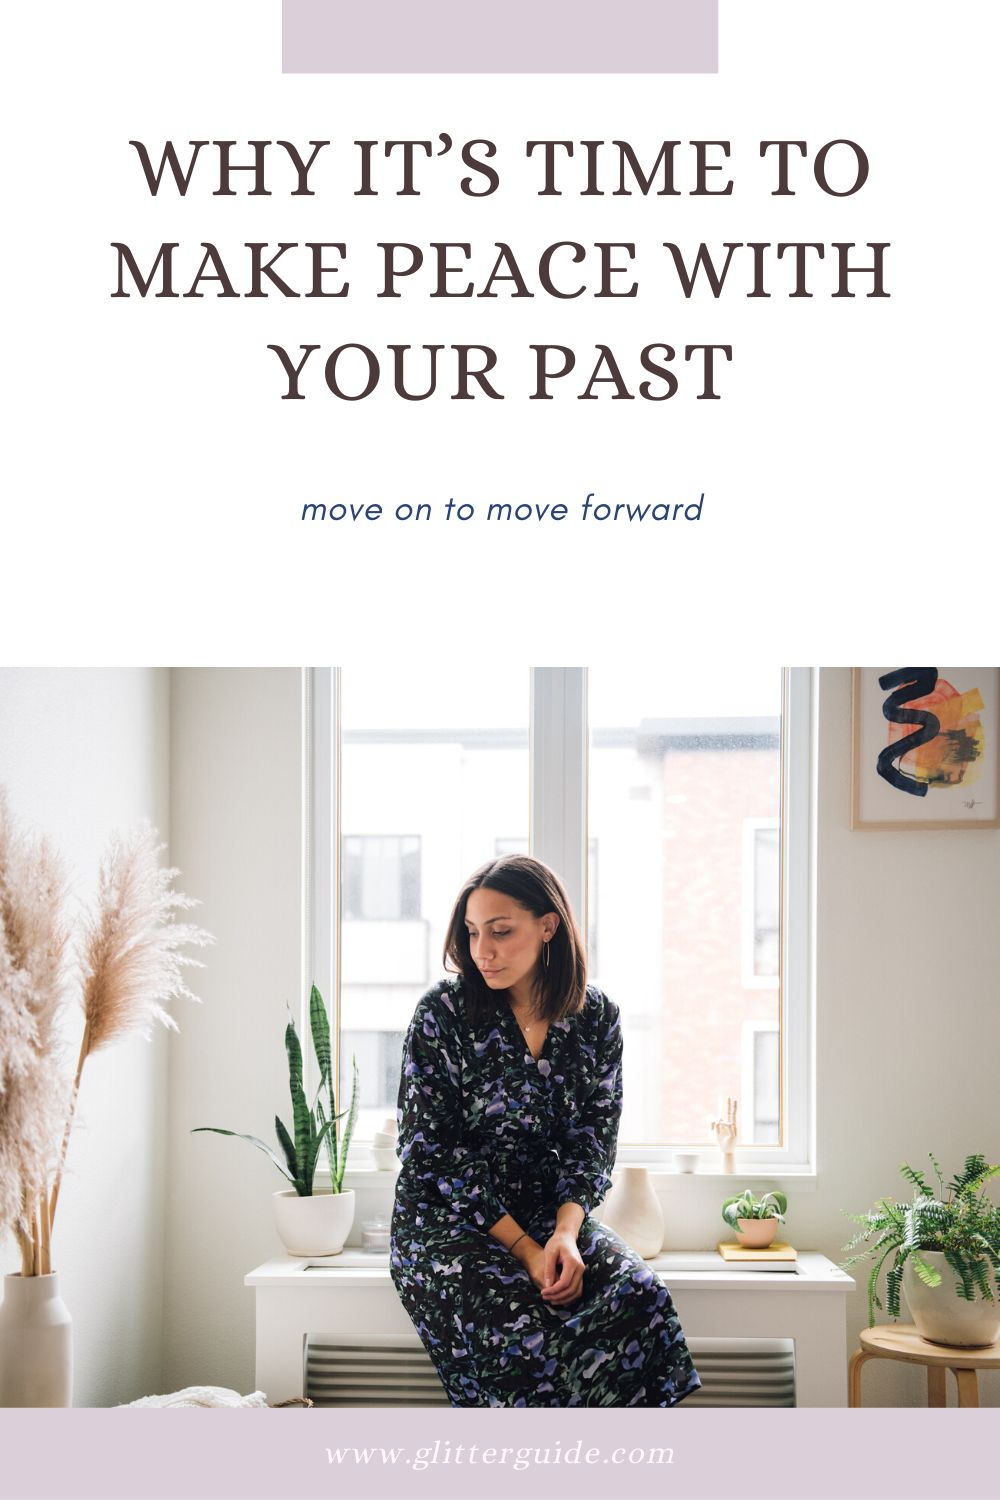 Why It's Time To Make Peace With Your Past